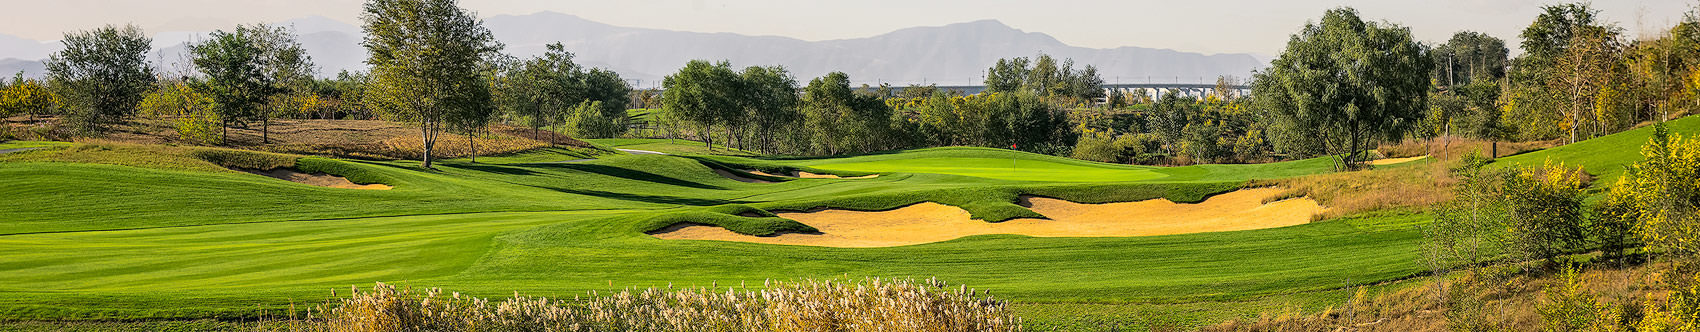 <div class='title'>           YINHONG NO. 6, YINTAI HONGEYE GOLF CLUB, BEIJING, 10TH HOLE         </div>                 <div class='description'>           After overnight winds, Beijing's air cleared beautifully, revealing a stunning 10th hole.         </div>